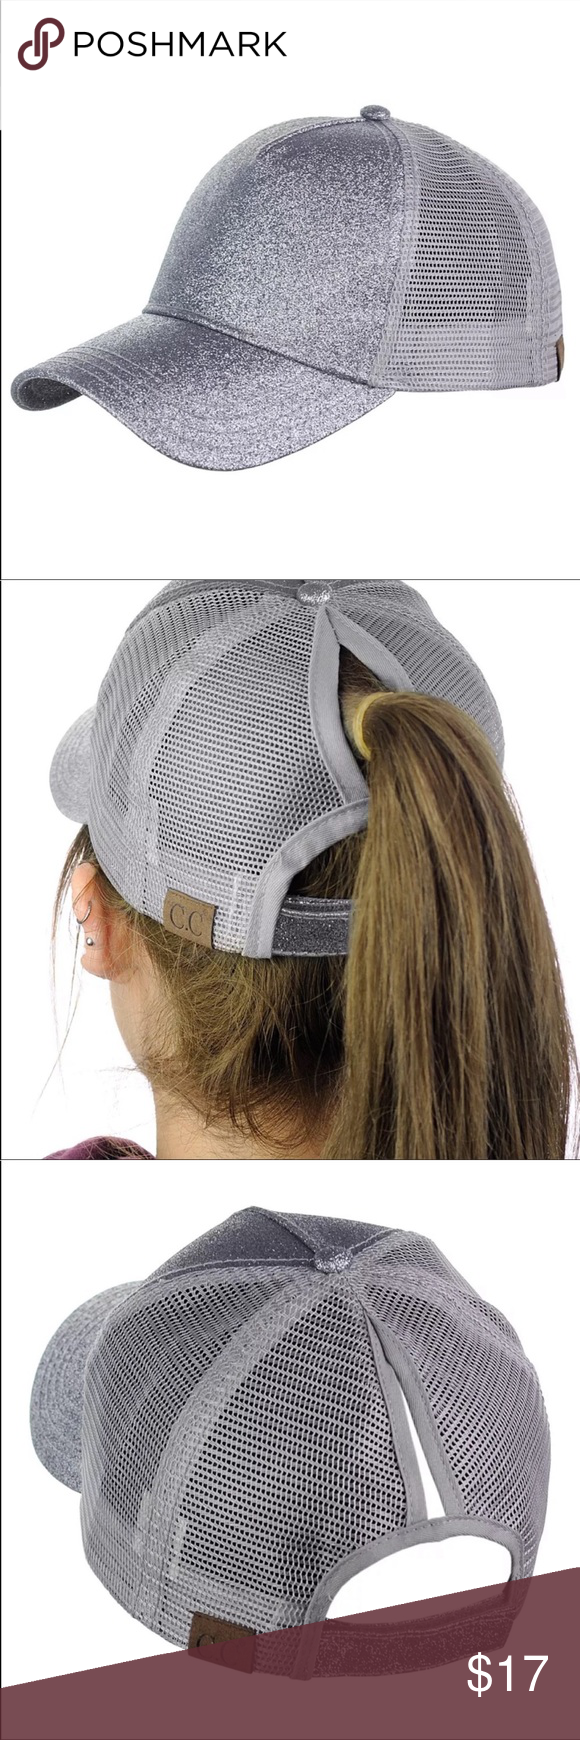 Silver High Pony Tail Lessy Bun Baseball Cap Hat Boutique Accessories Caps Hats Hats